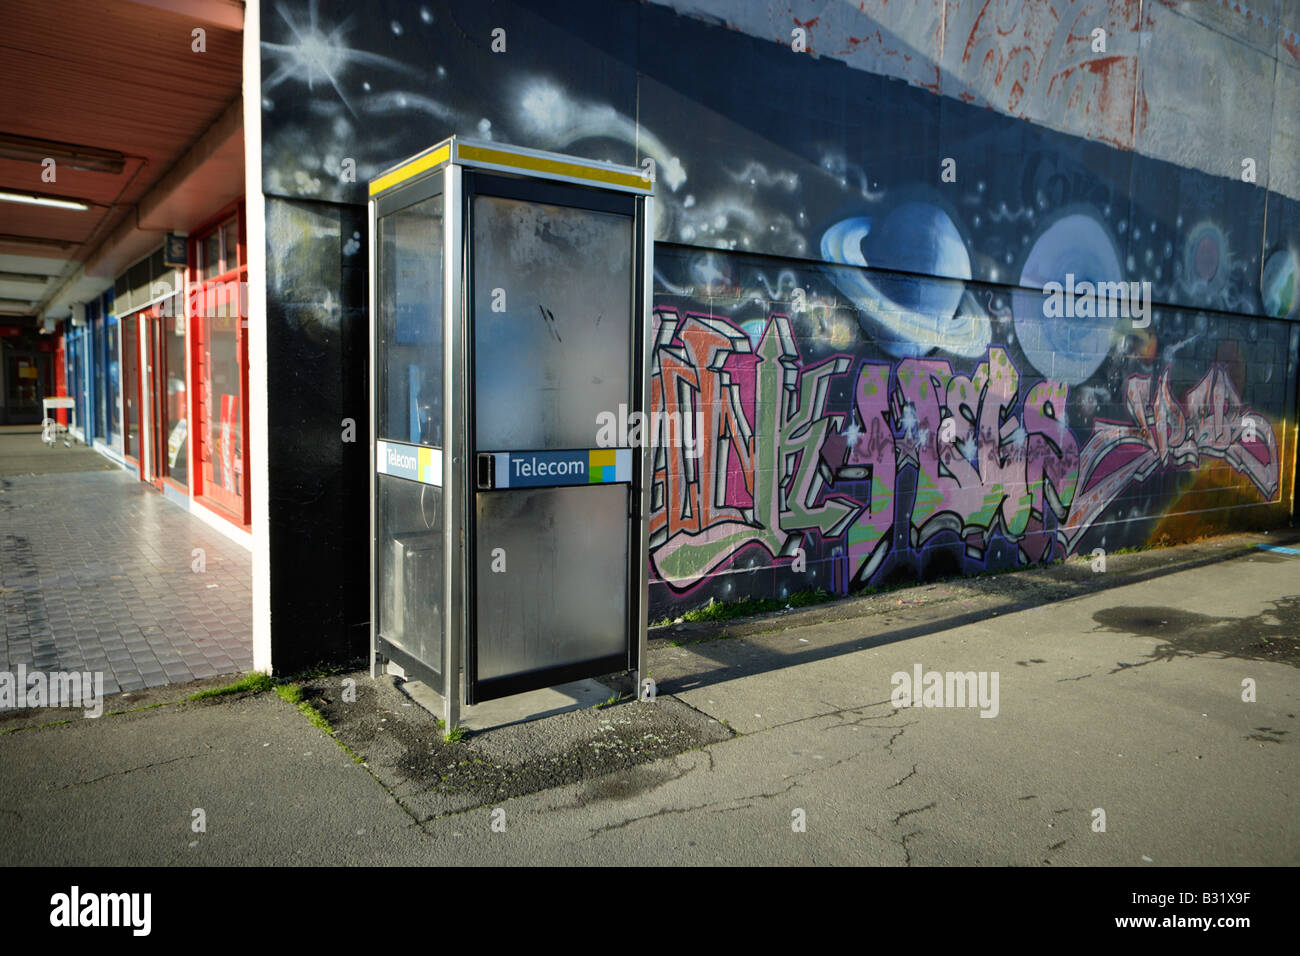 Telephone kiosk and graffiti art Urban landscape Palmerston North New Zealand - Stock Image